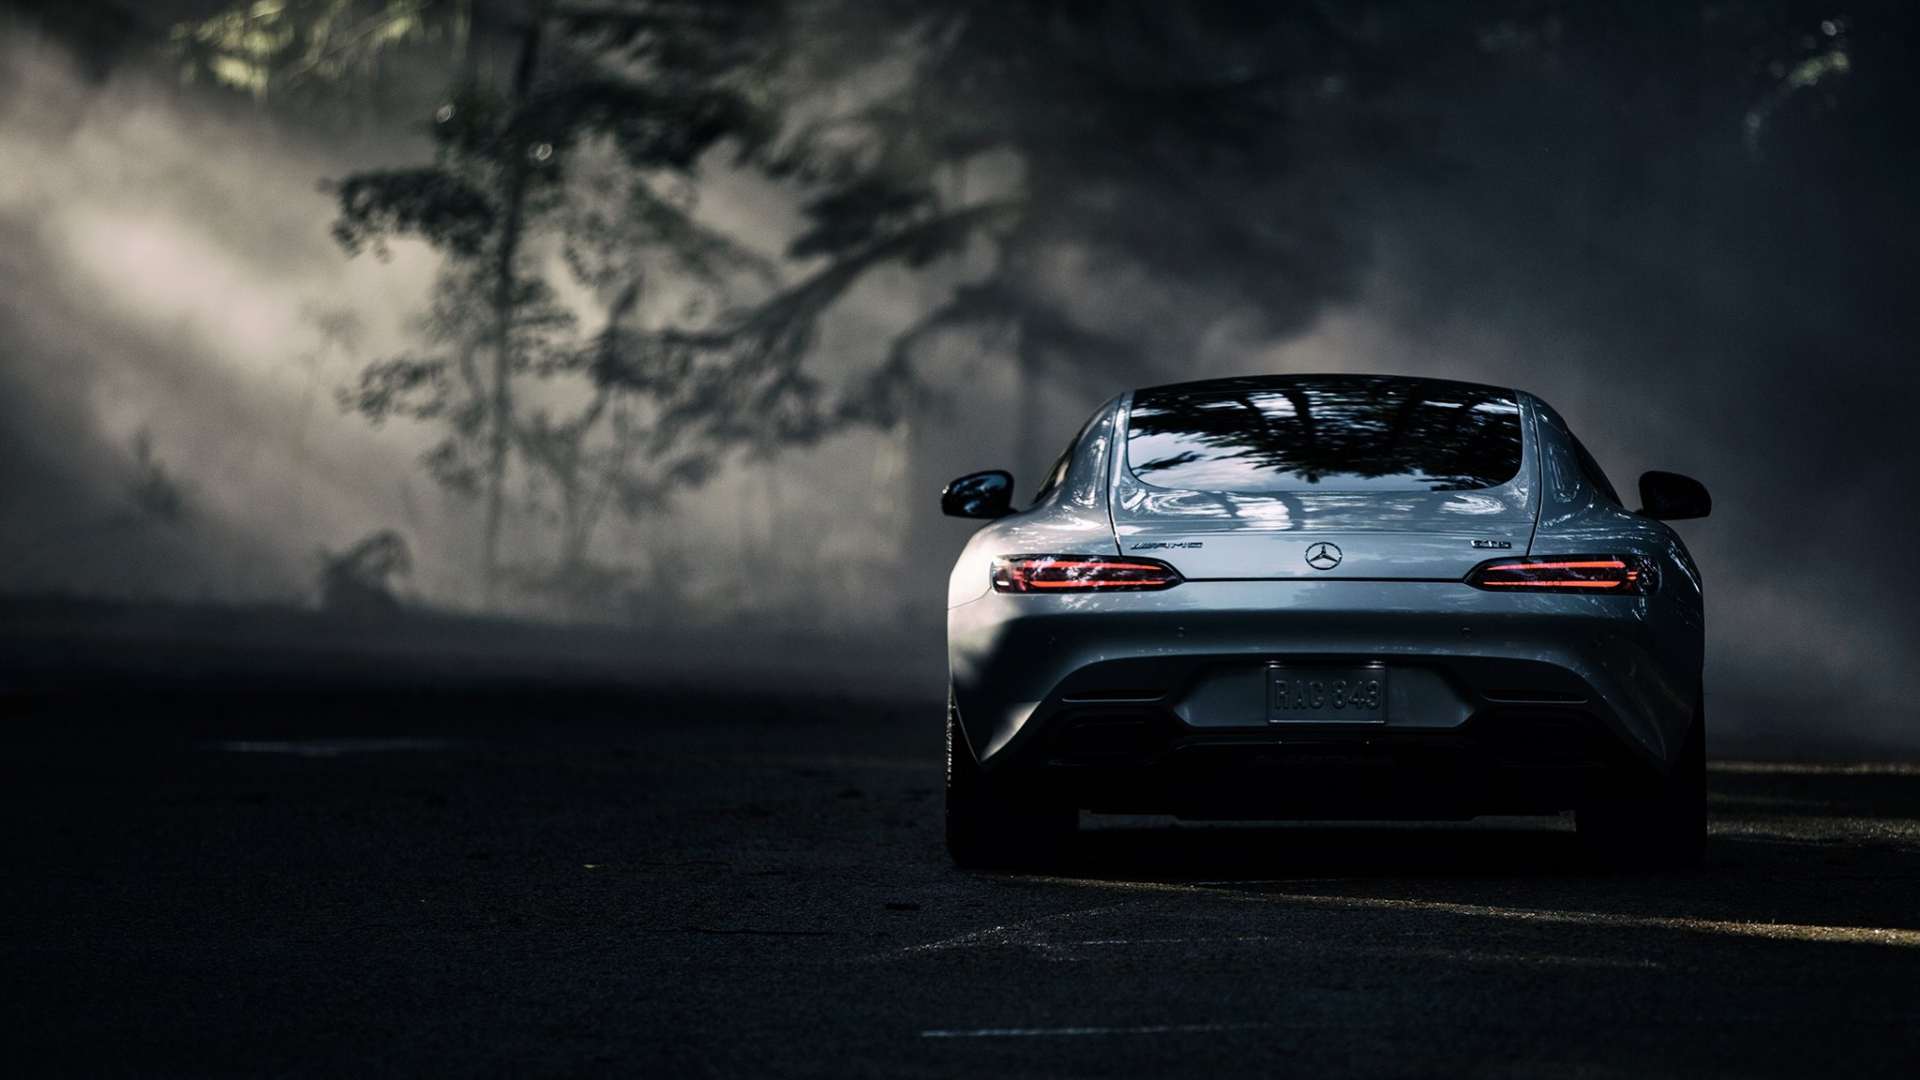 Full-HD-1080p-Mercedes-benz-Latest-Mercedes-Benz-Amg-Gt-S-Rear-View-1920%C3%971080-wallpaper-wp3805688